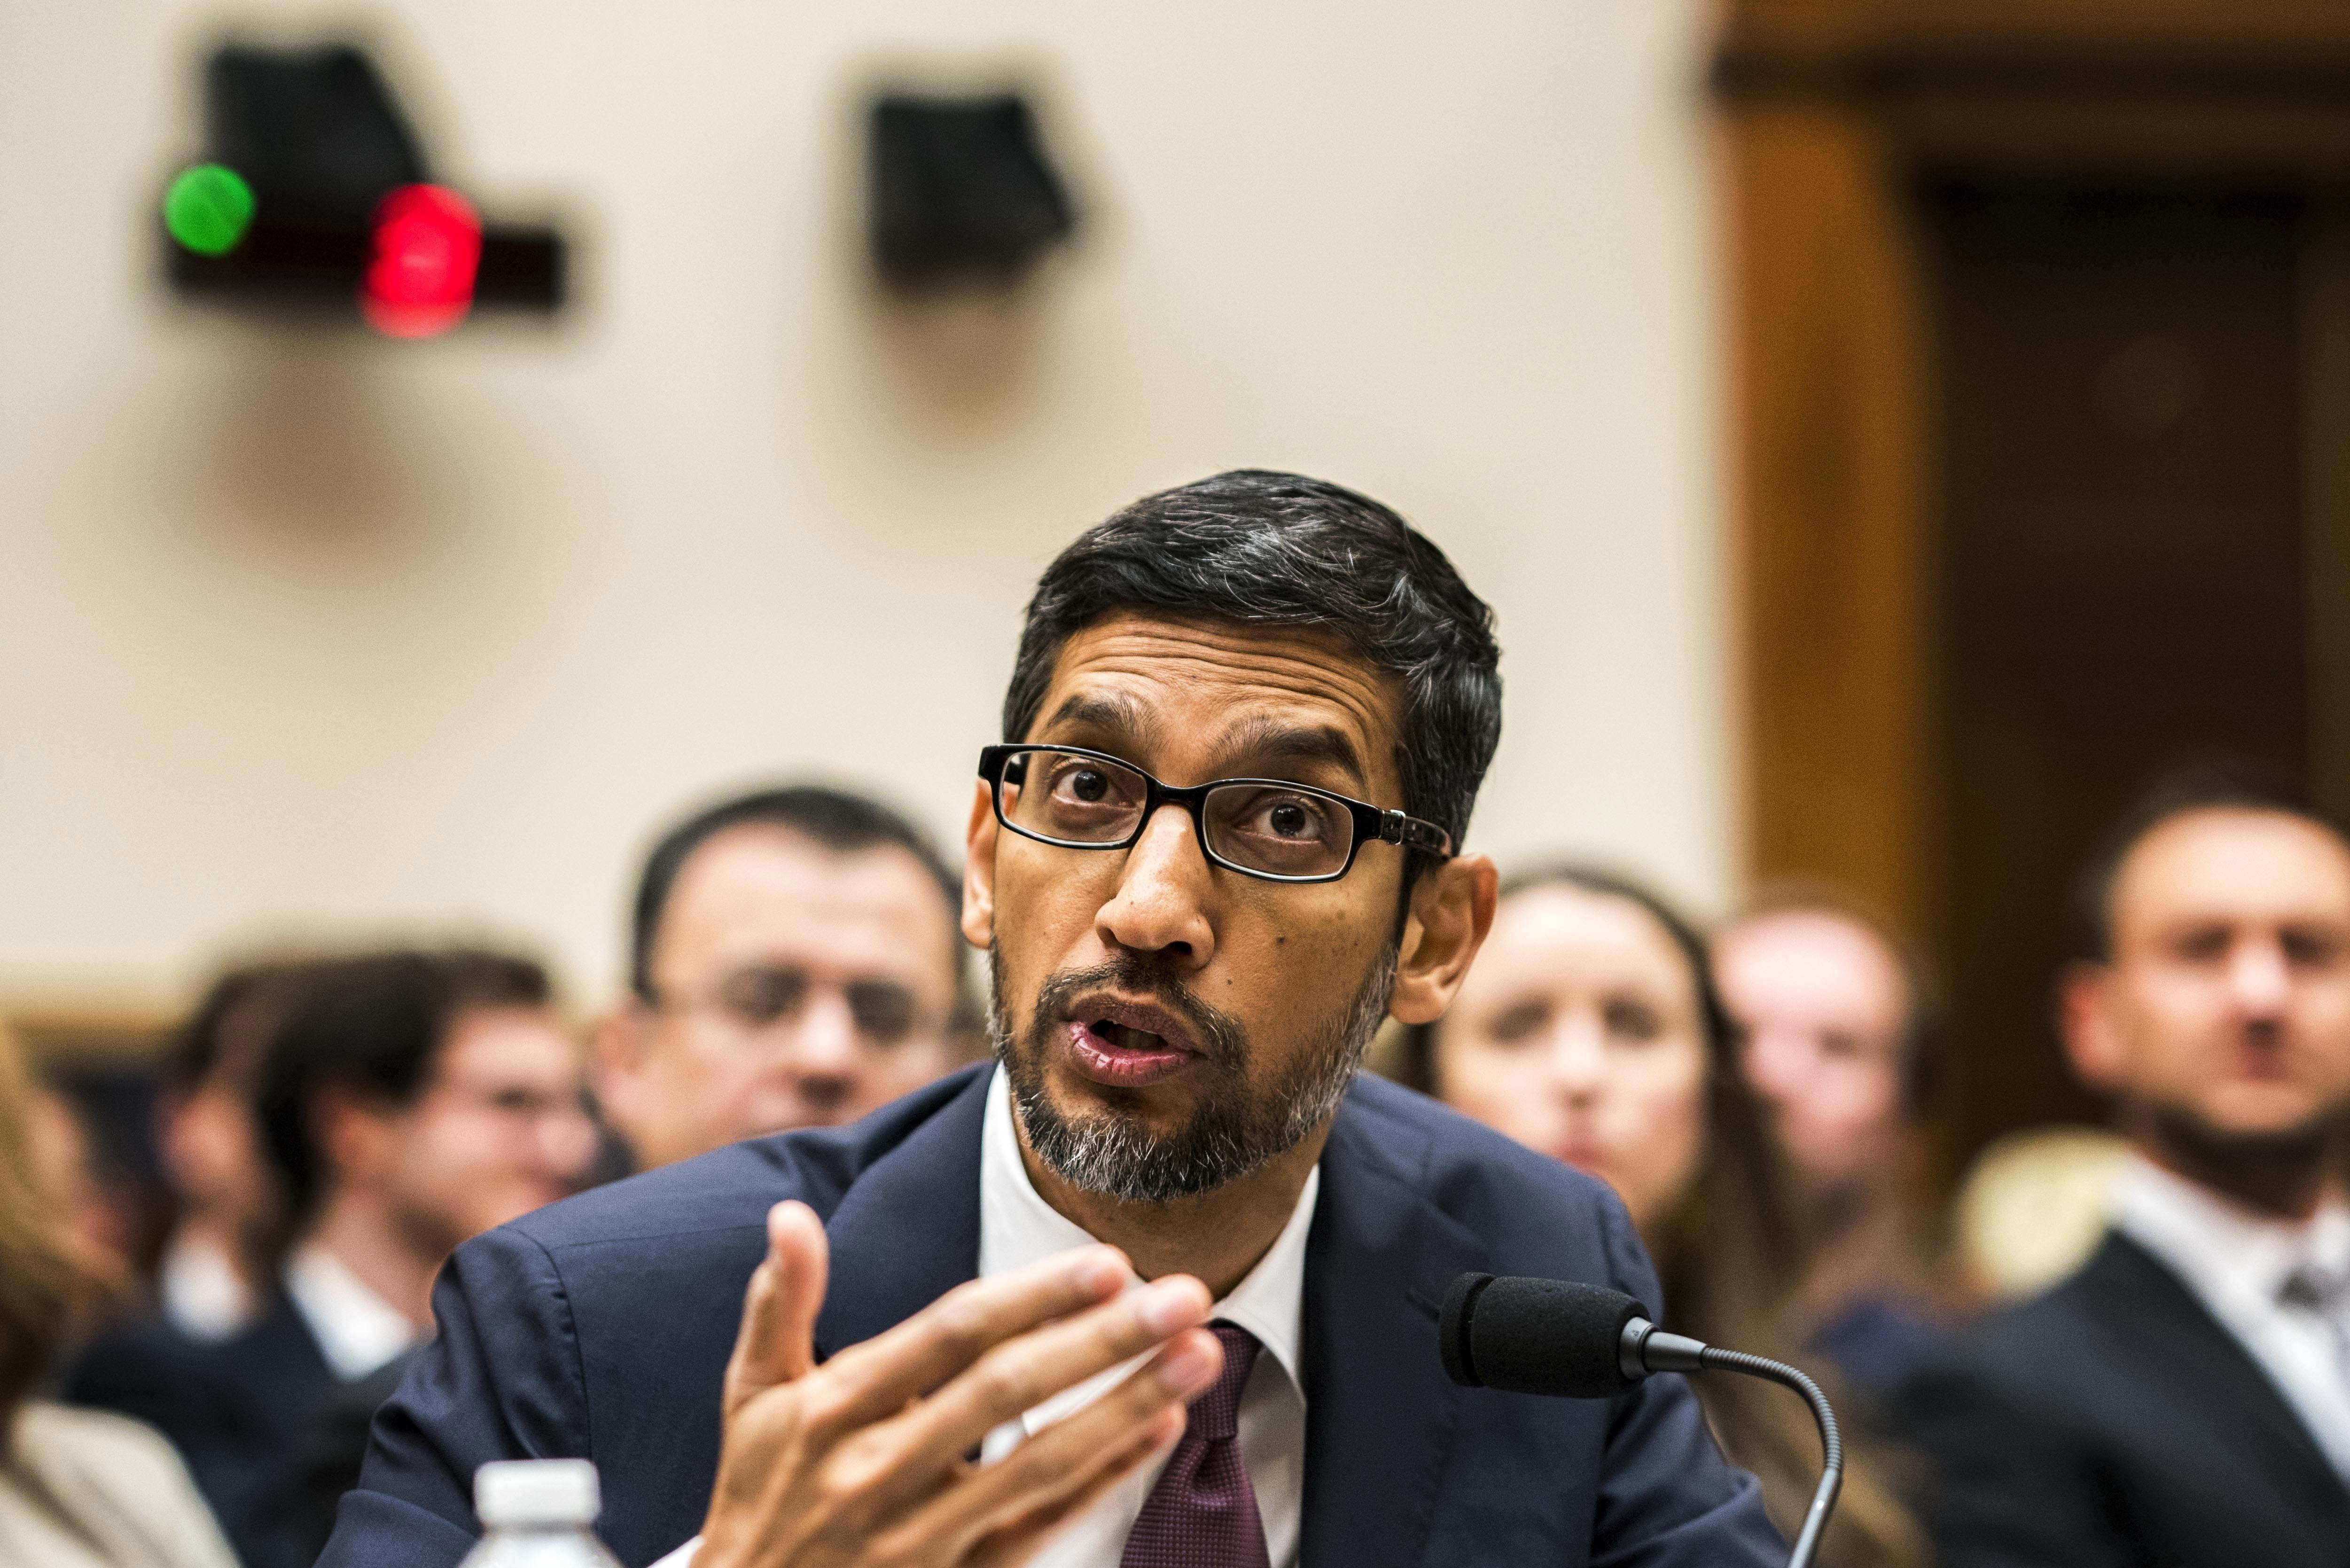 Google CEO Sundar Pichai appears before the House Judiciary Committee on Capitol Hill in Washington on Dec. 11, 2018.